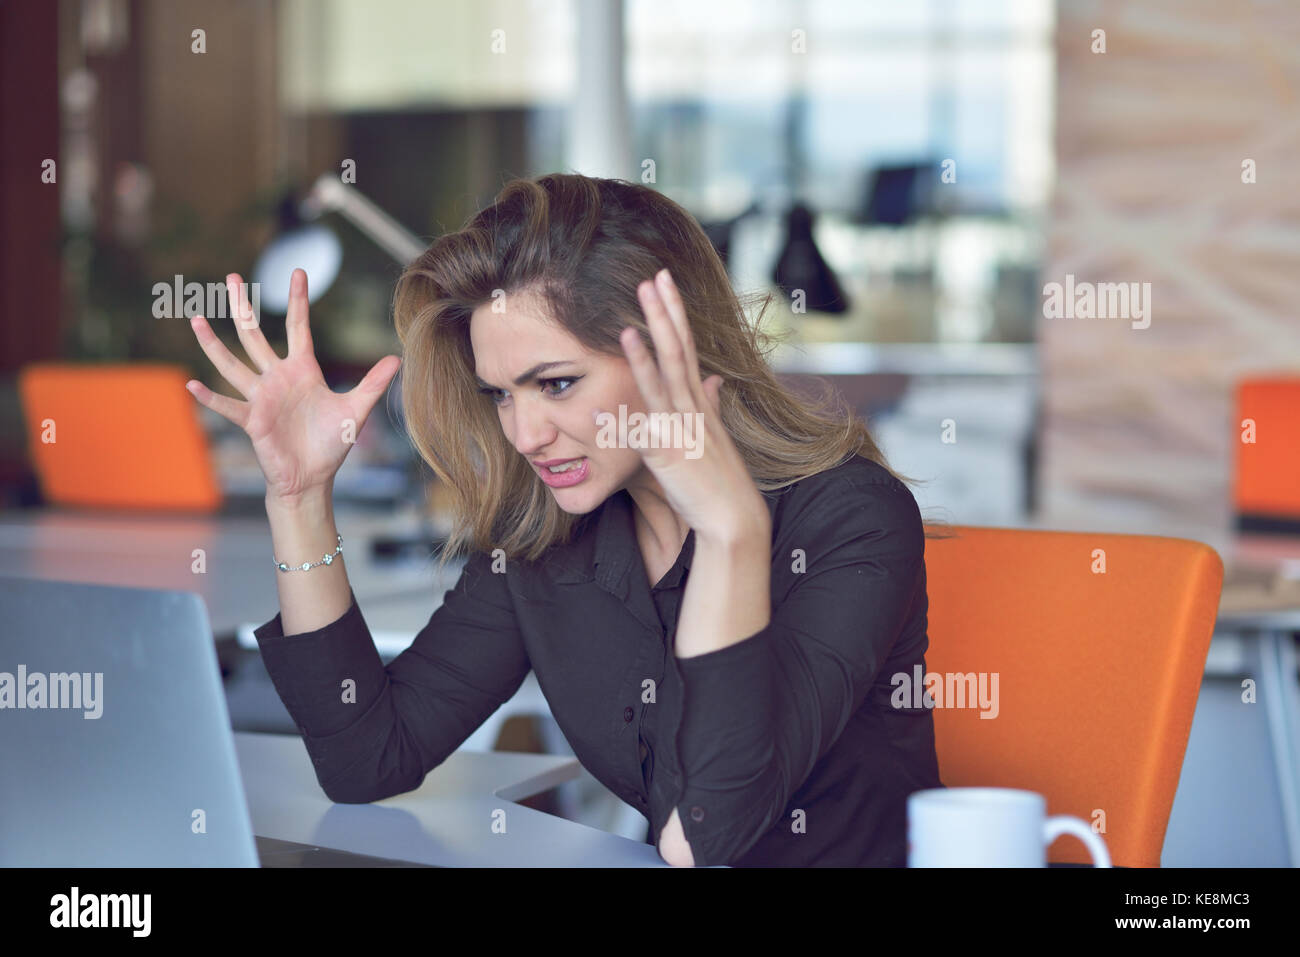 Frustrated angry woman screaming on her laptop. - Stock Image